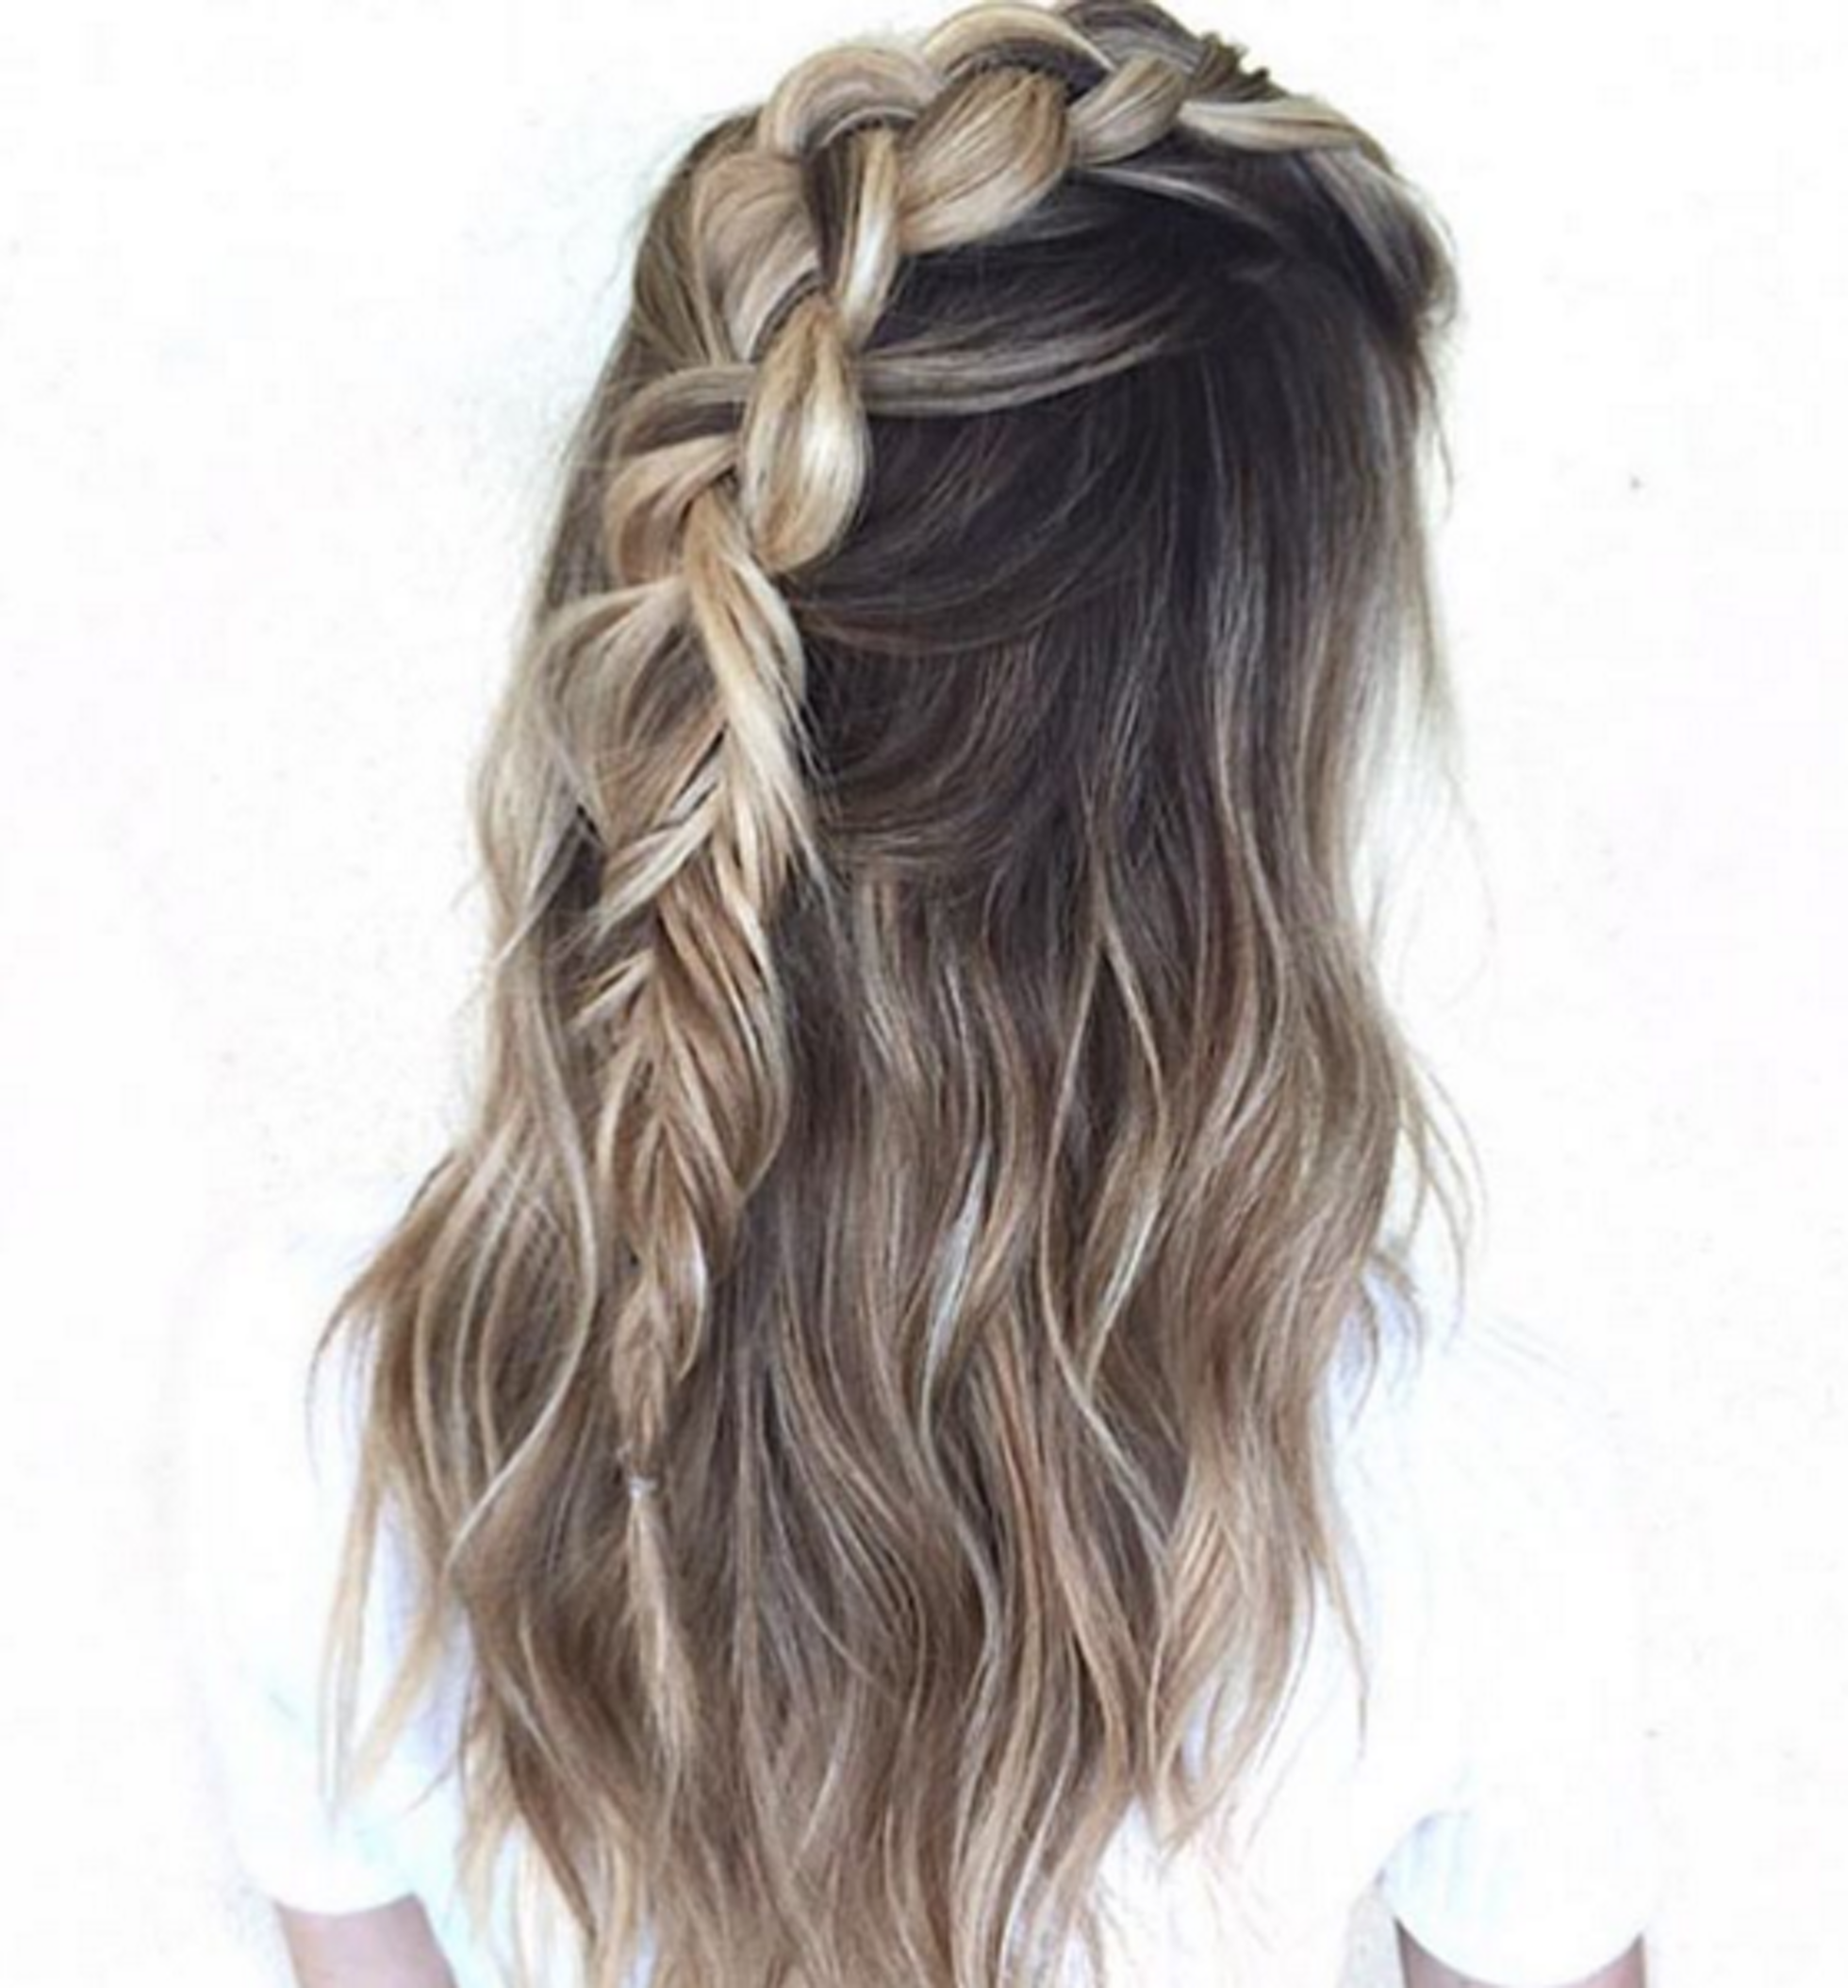 Coiffure Tresse Diademe Pinterest Darlinglainy Braided Hairstyles